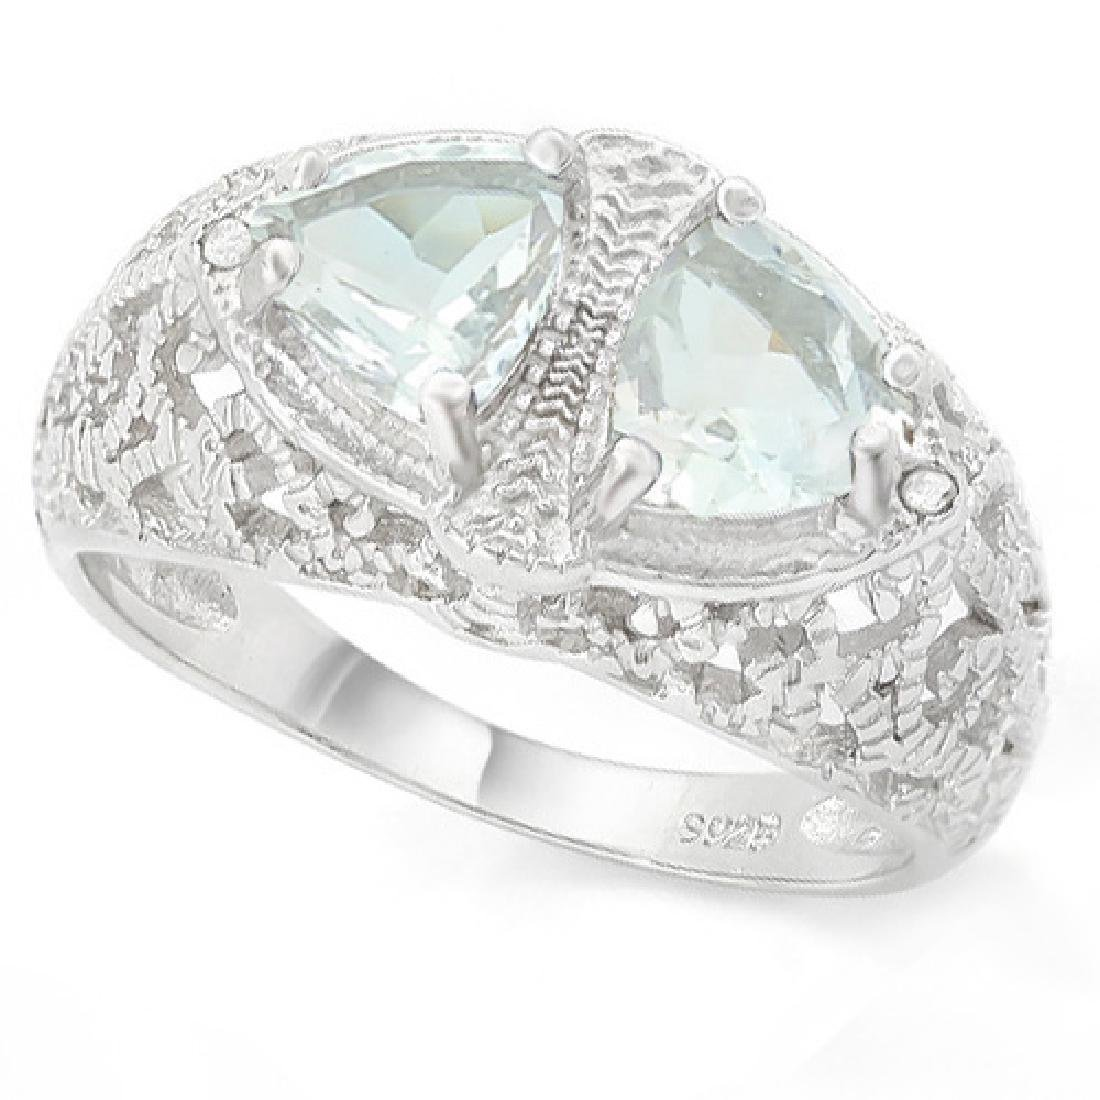 Filigree 2 Stone Aquamarine Ring with Diamond in